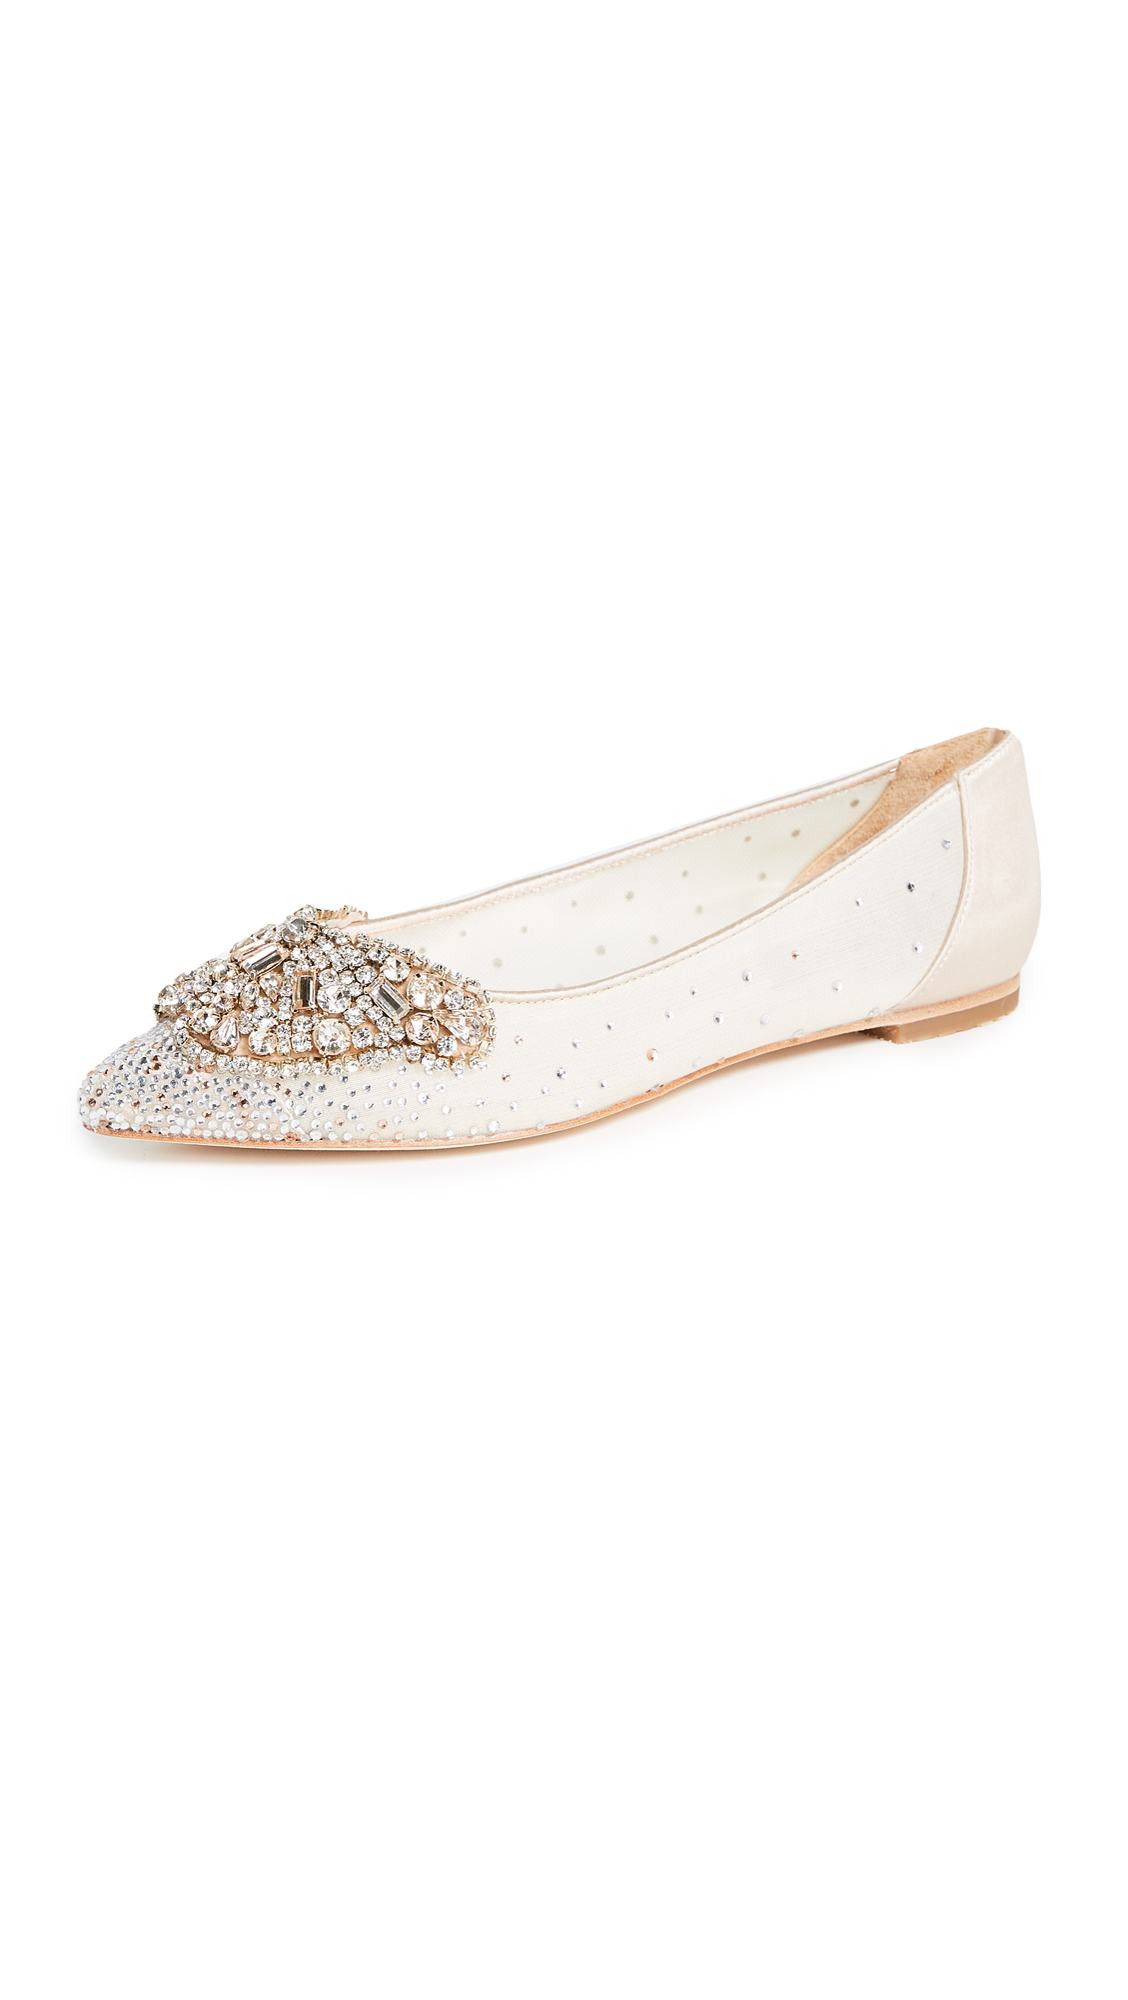 Badgley Mischka Quinn Point Toe Flats